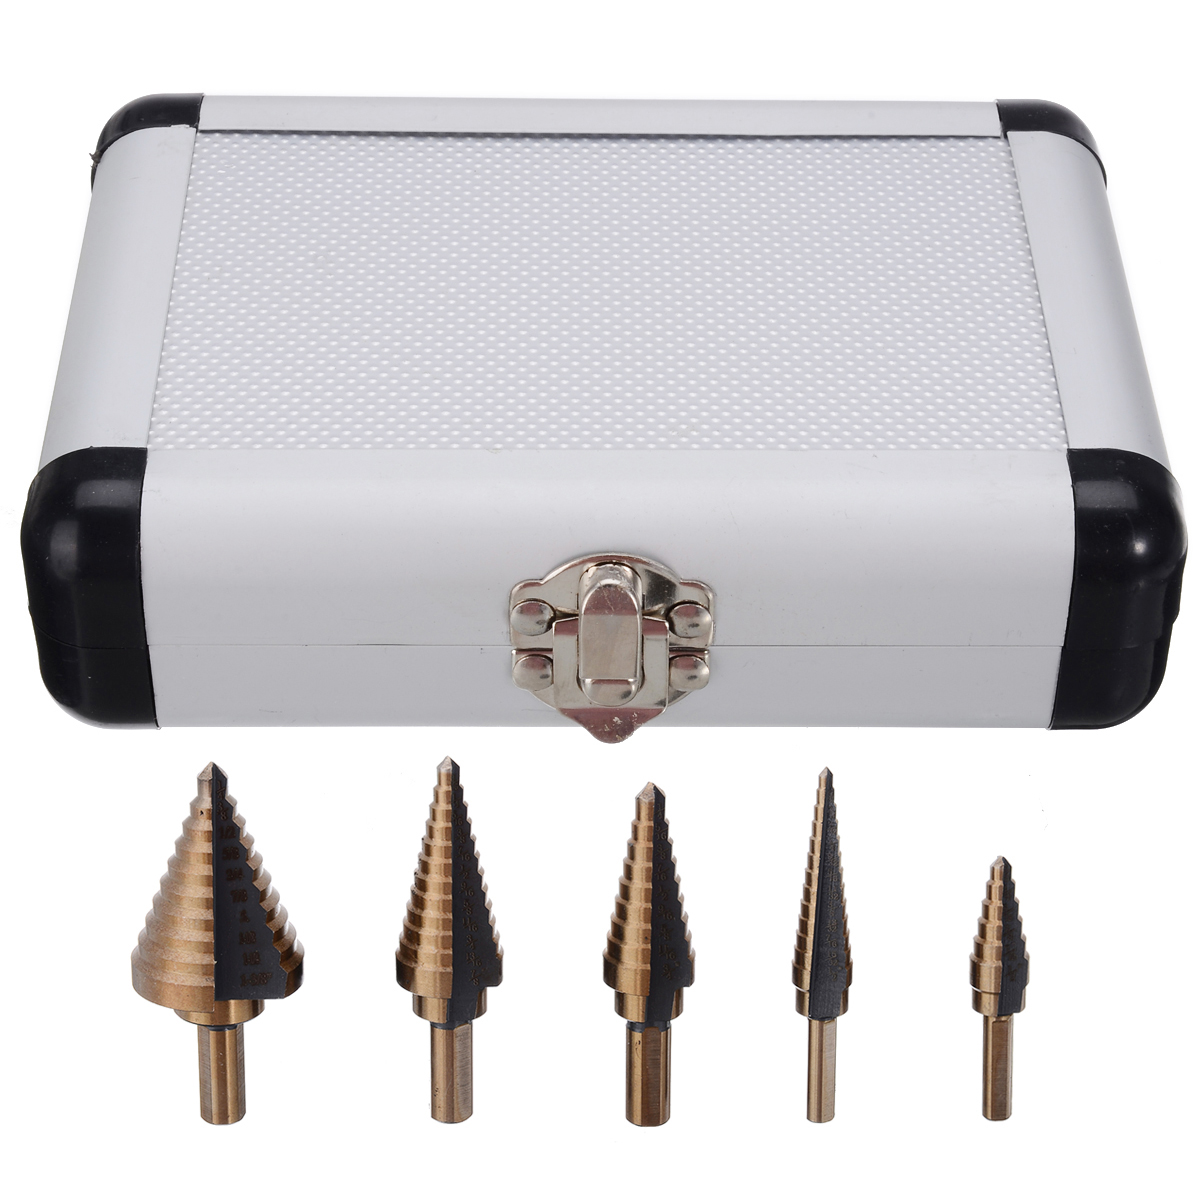 5pcs/kit New HSS Step Titanium Cone Drill Hole Cutter Bit Multiple Hole 50 Sizes Step Drill Bit with Aluminum Case High Quality